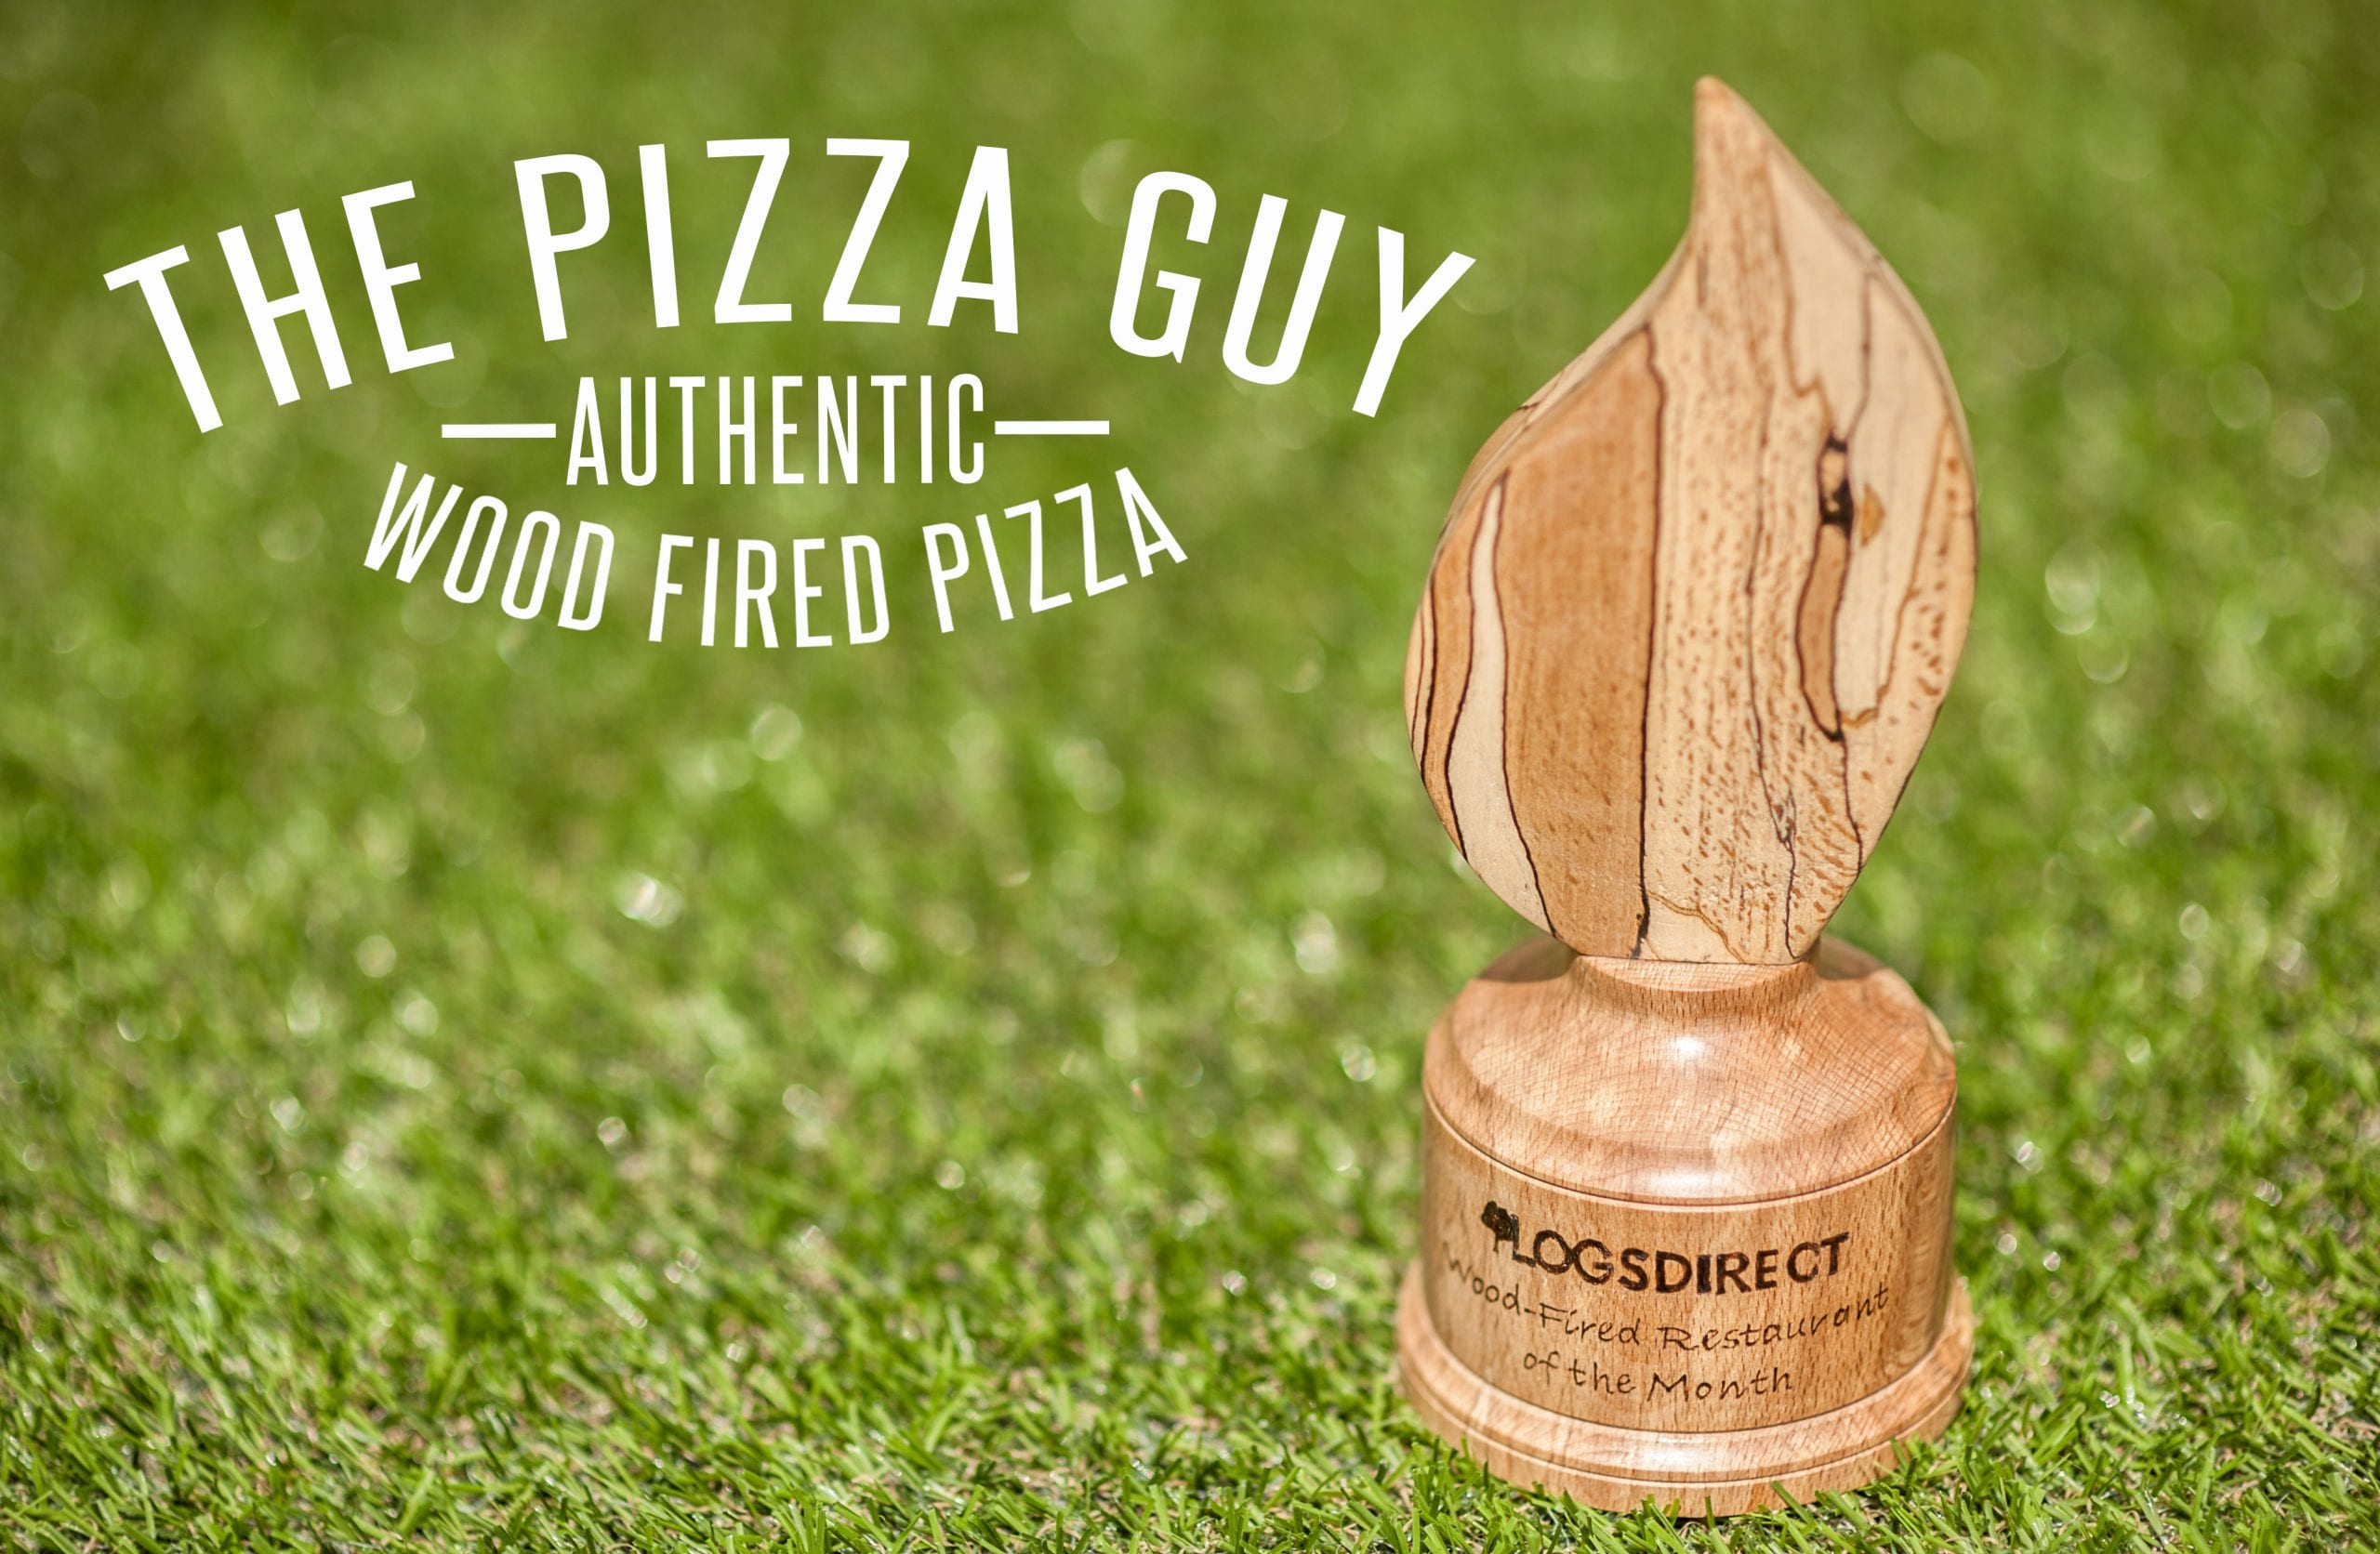 The-Pizza-Guy-award-winning-wood-fired-pizza